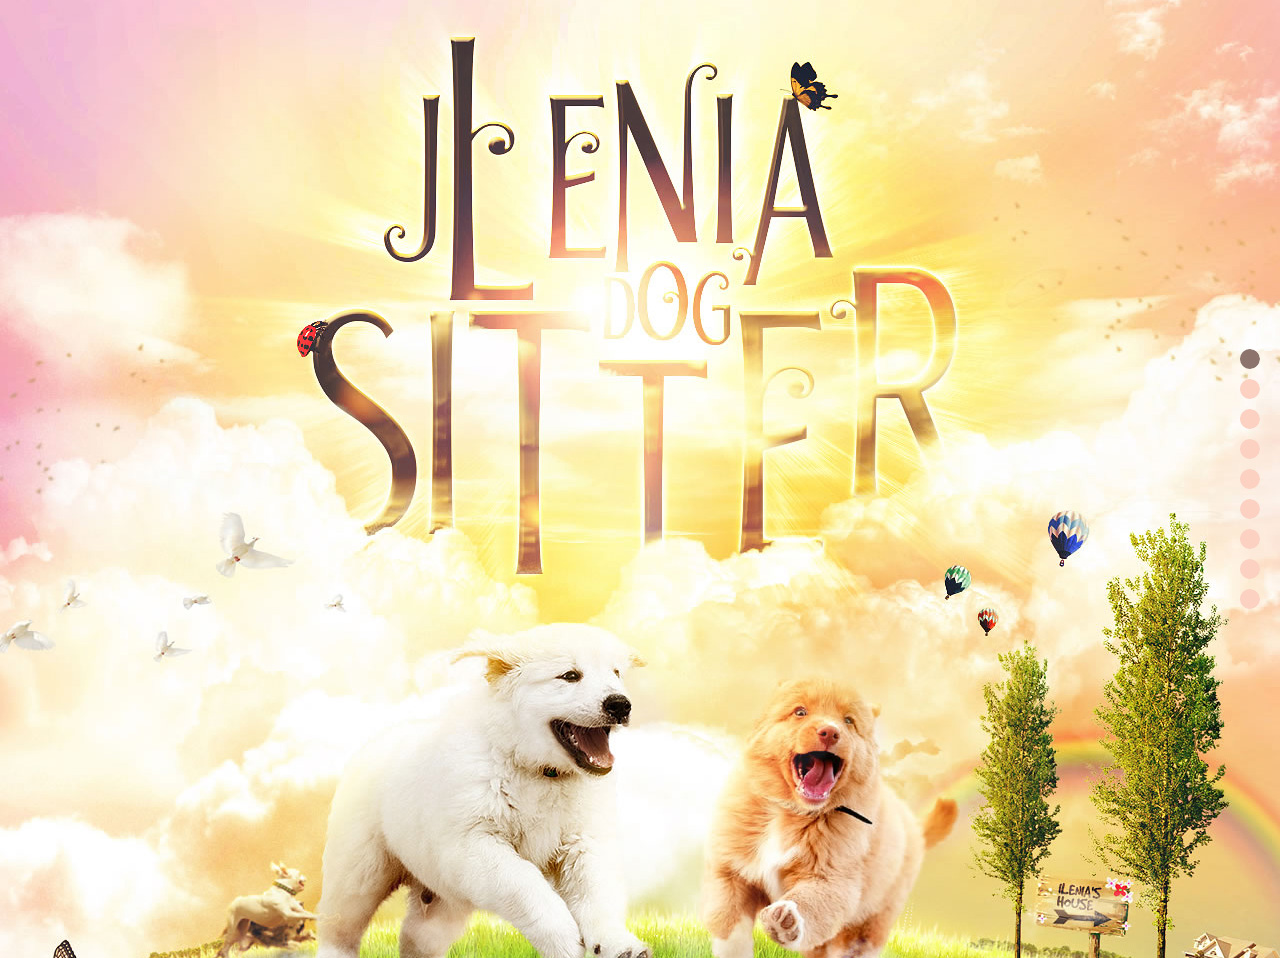 Jlenia Dog Sitter Roma Website Screenshot